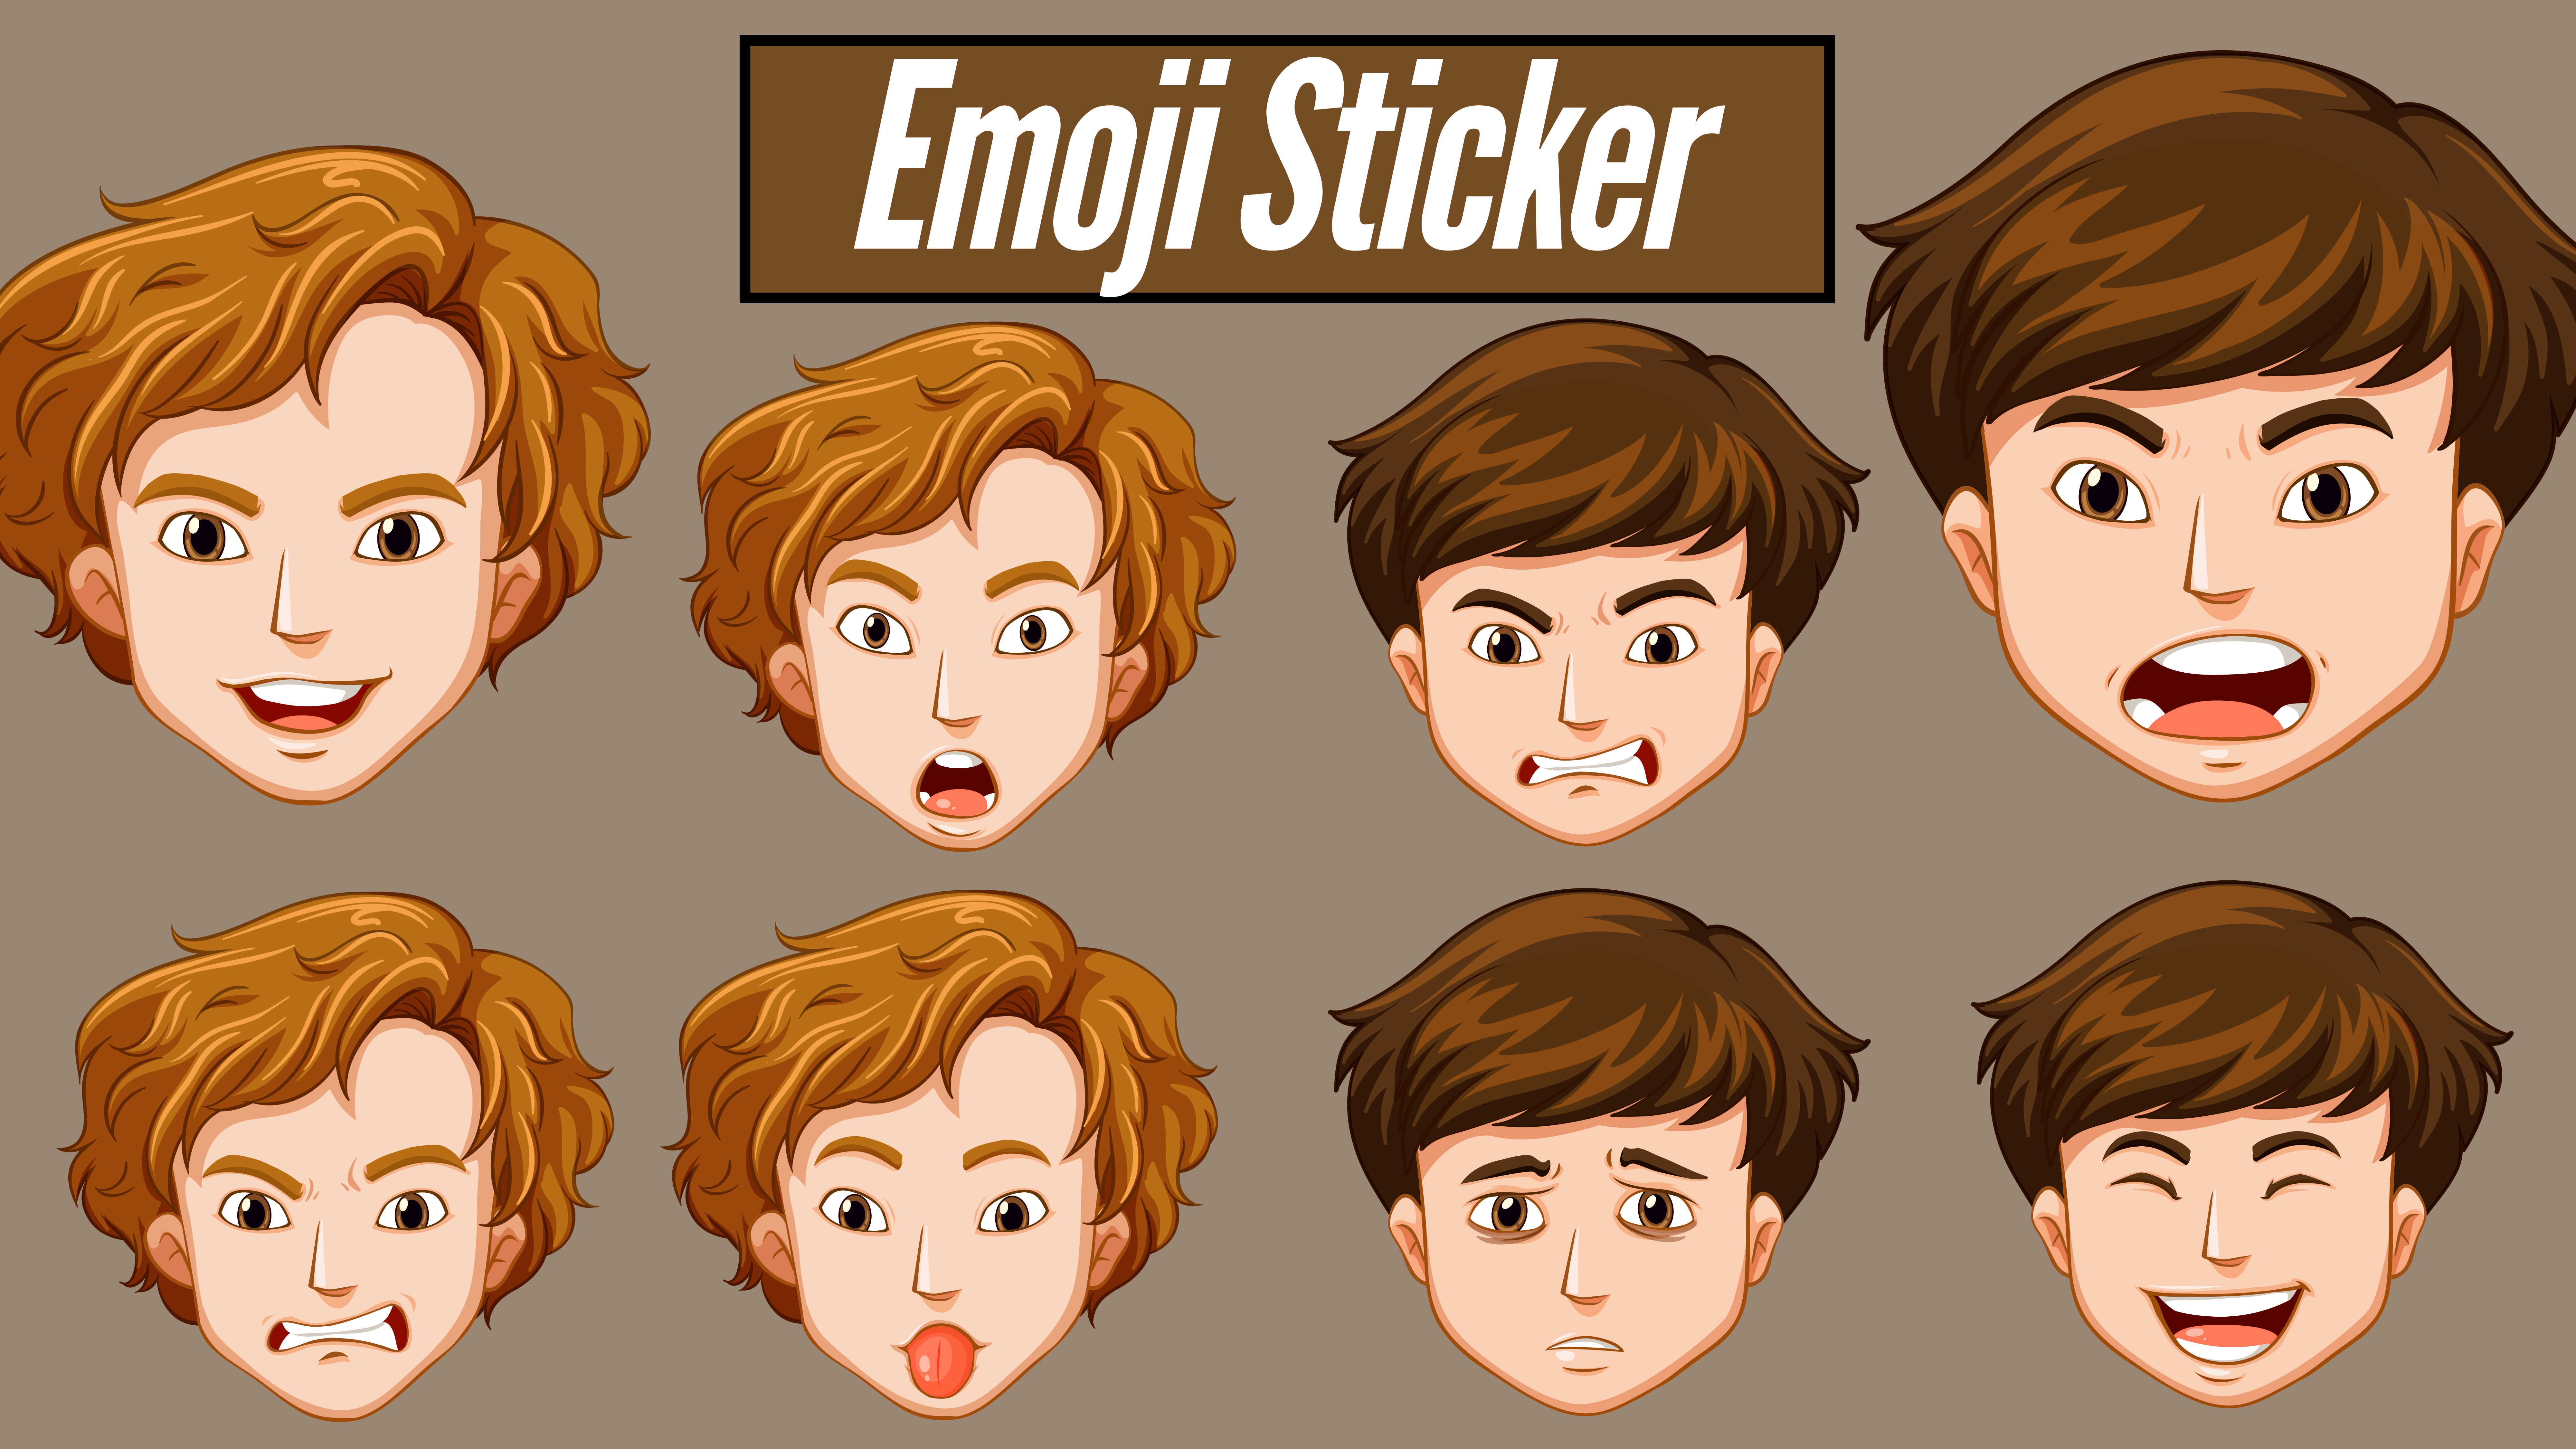 I will draw custom emoji chat stickers or any emoticons